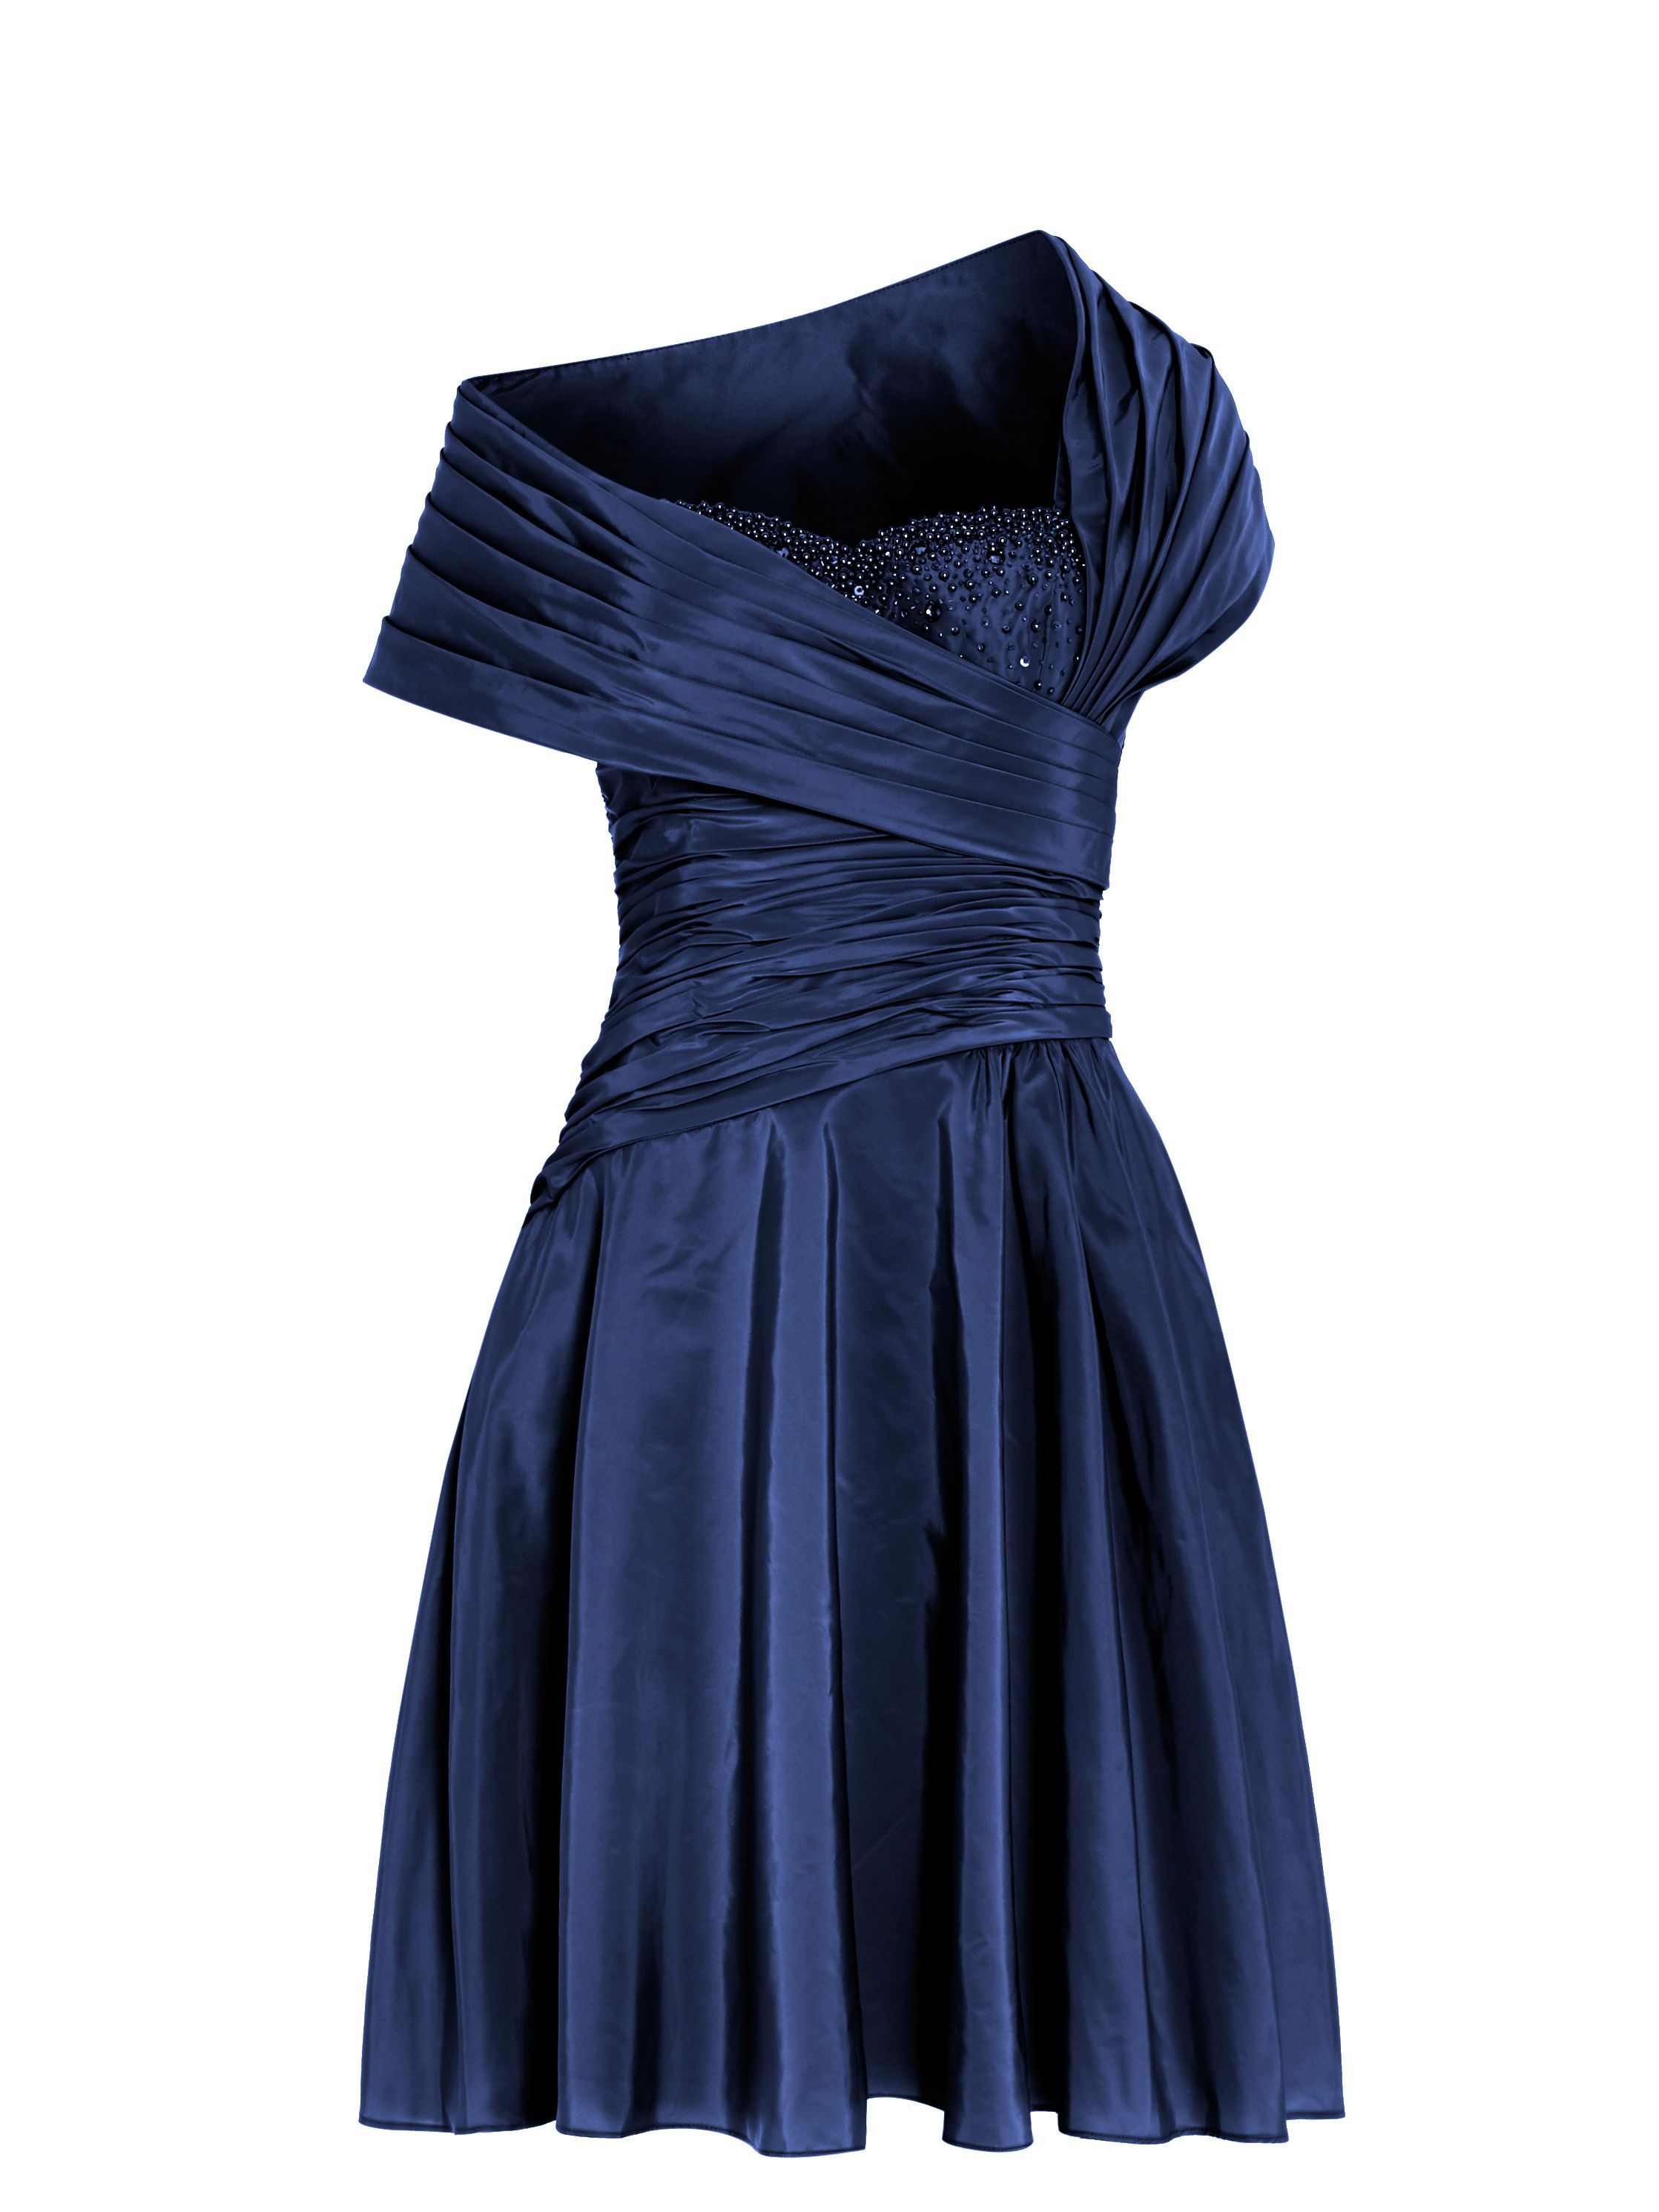 Anoushka G Monica 1950 S Gathered Dress In Blue Lyst